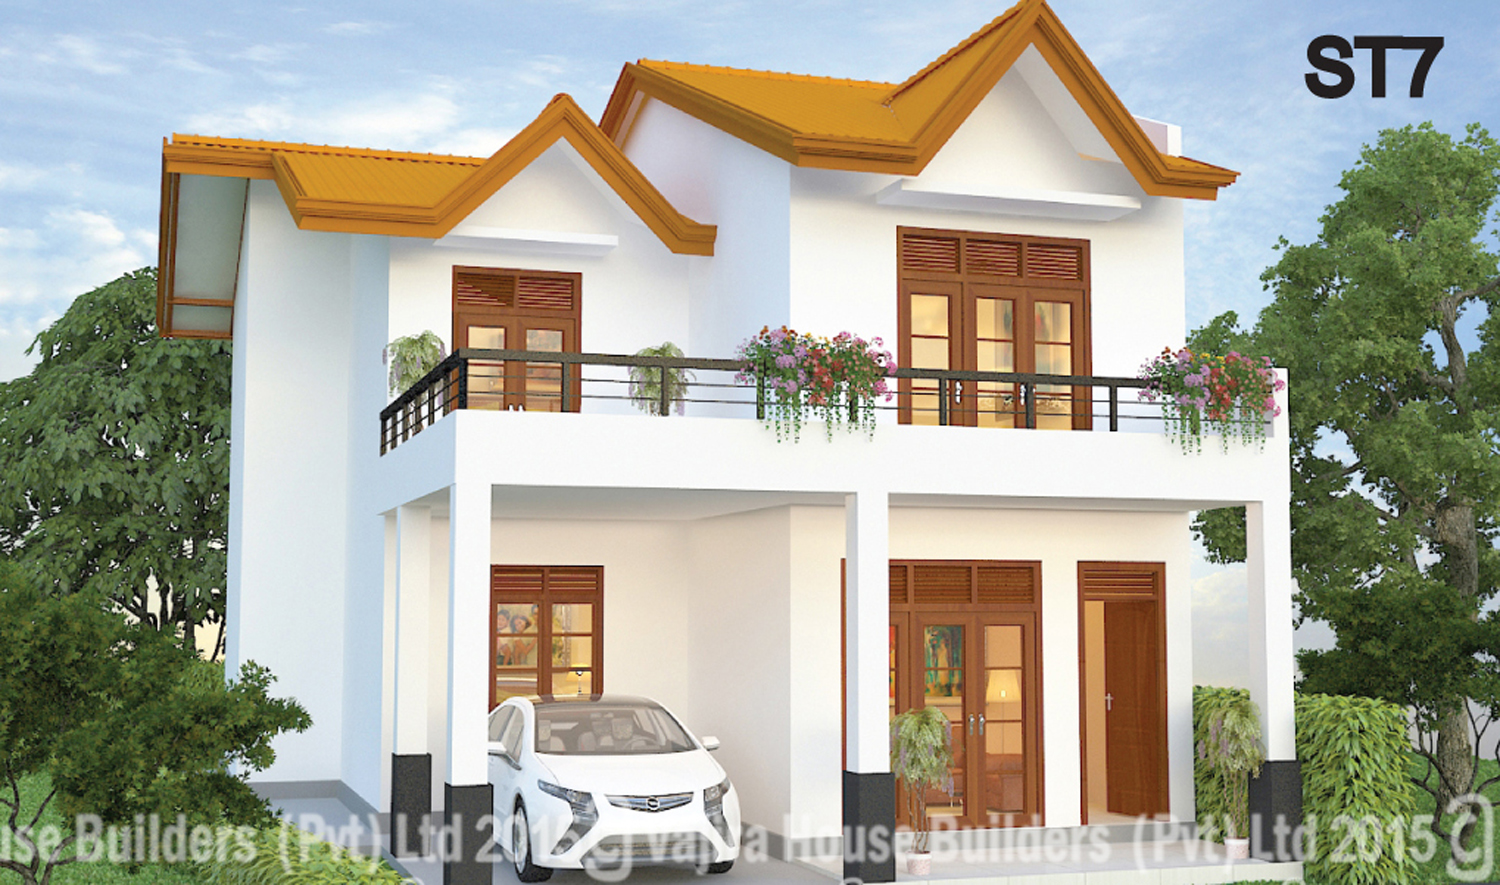 Door Designs Sri Lanka Photo Gallery Sri Lankan House Designs Joy Studio Design Gallery